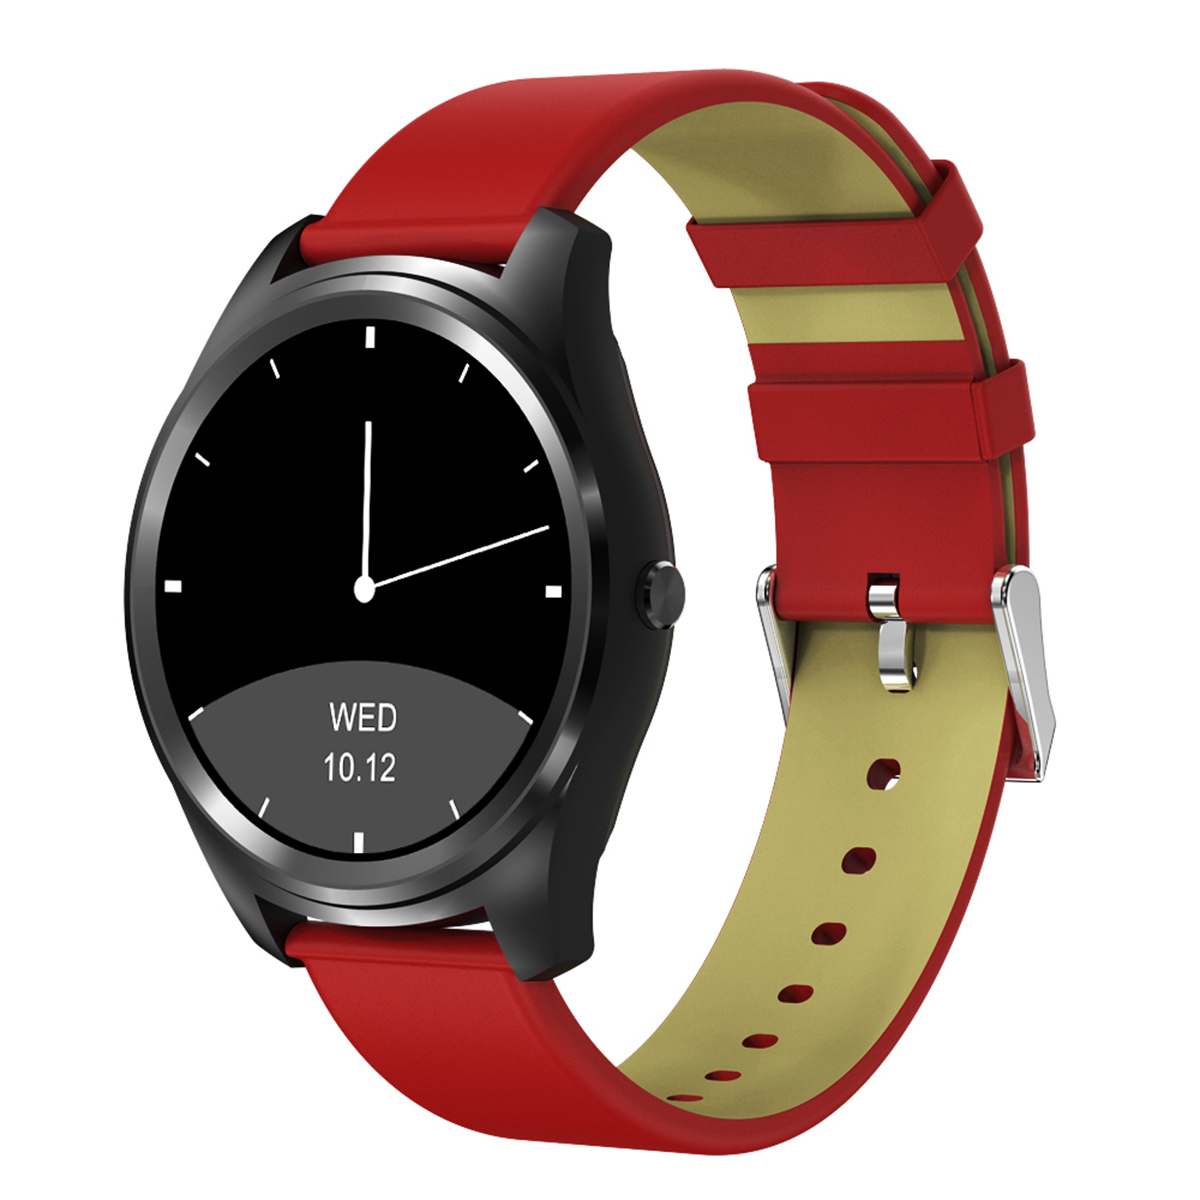 Diggro DI03 Bluetooth Siri Smart watch MTK2502C 128MB+64MB 1.15cm Ultra-thin IP67 Heart Rate Monitor Pedometer Sedentary Remind Sleep Monitor Notifications Pushing for Android & IOS (Silver)